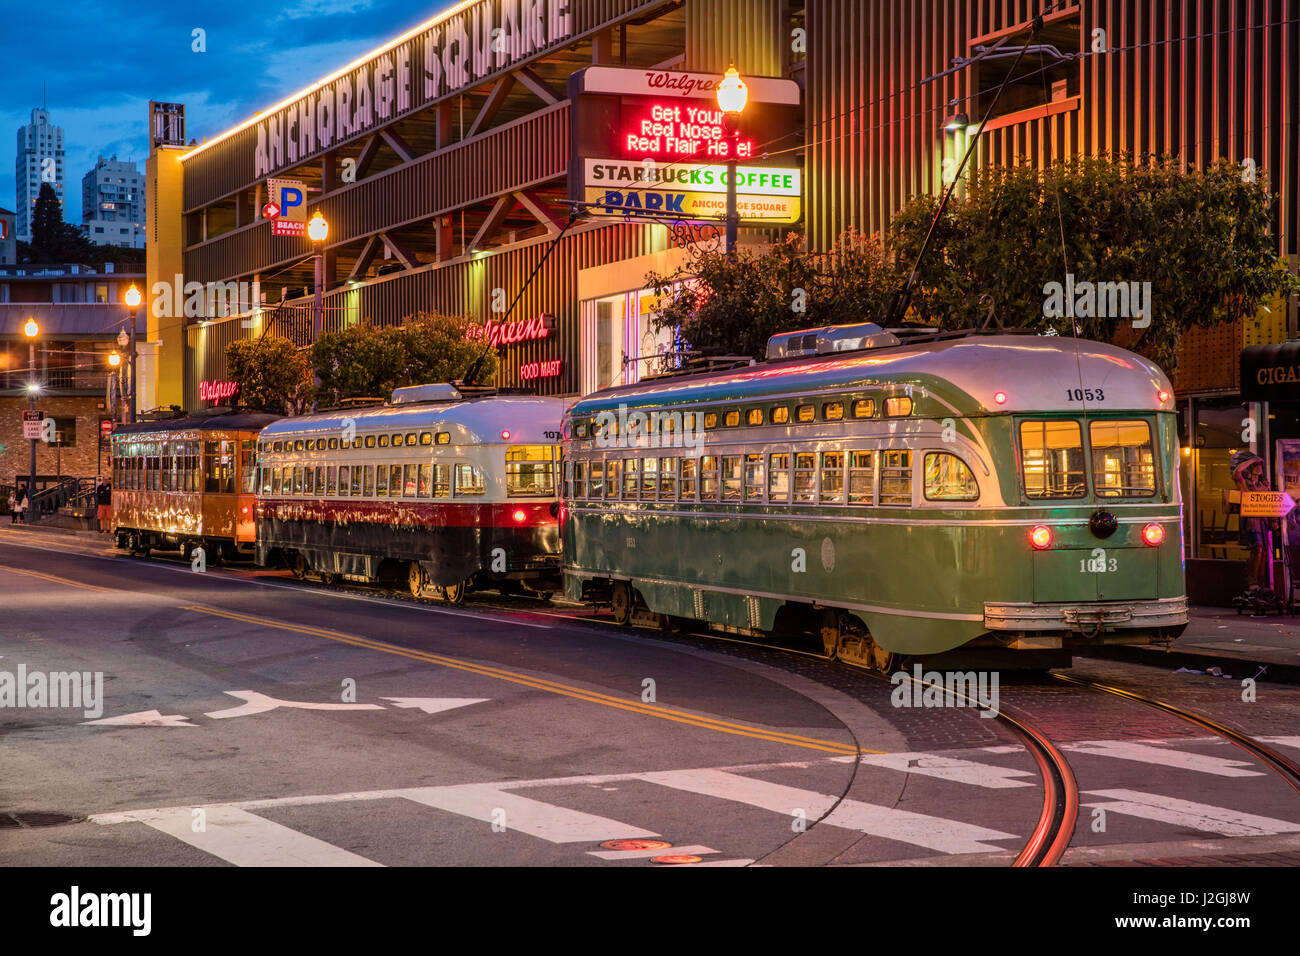 Historic streetcars line up in Fisherman's Wharf in San Francisco, California, USA (Large format sizes available) - Stock Image